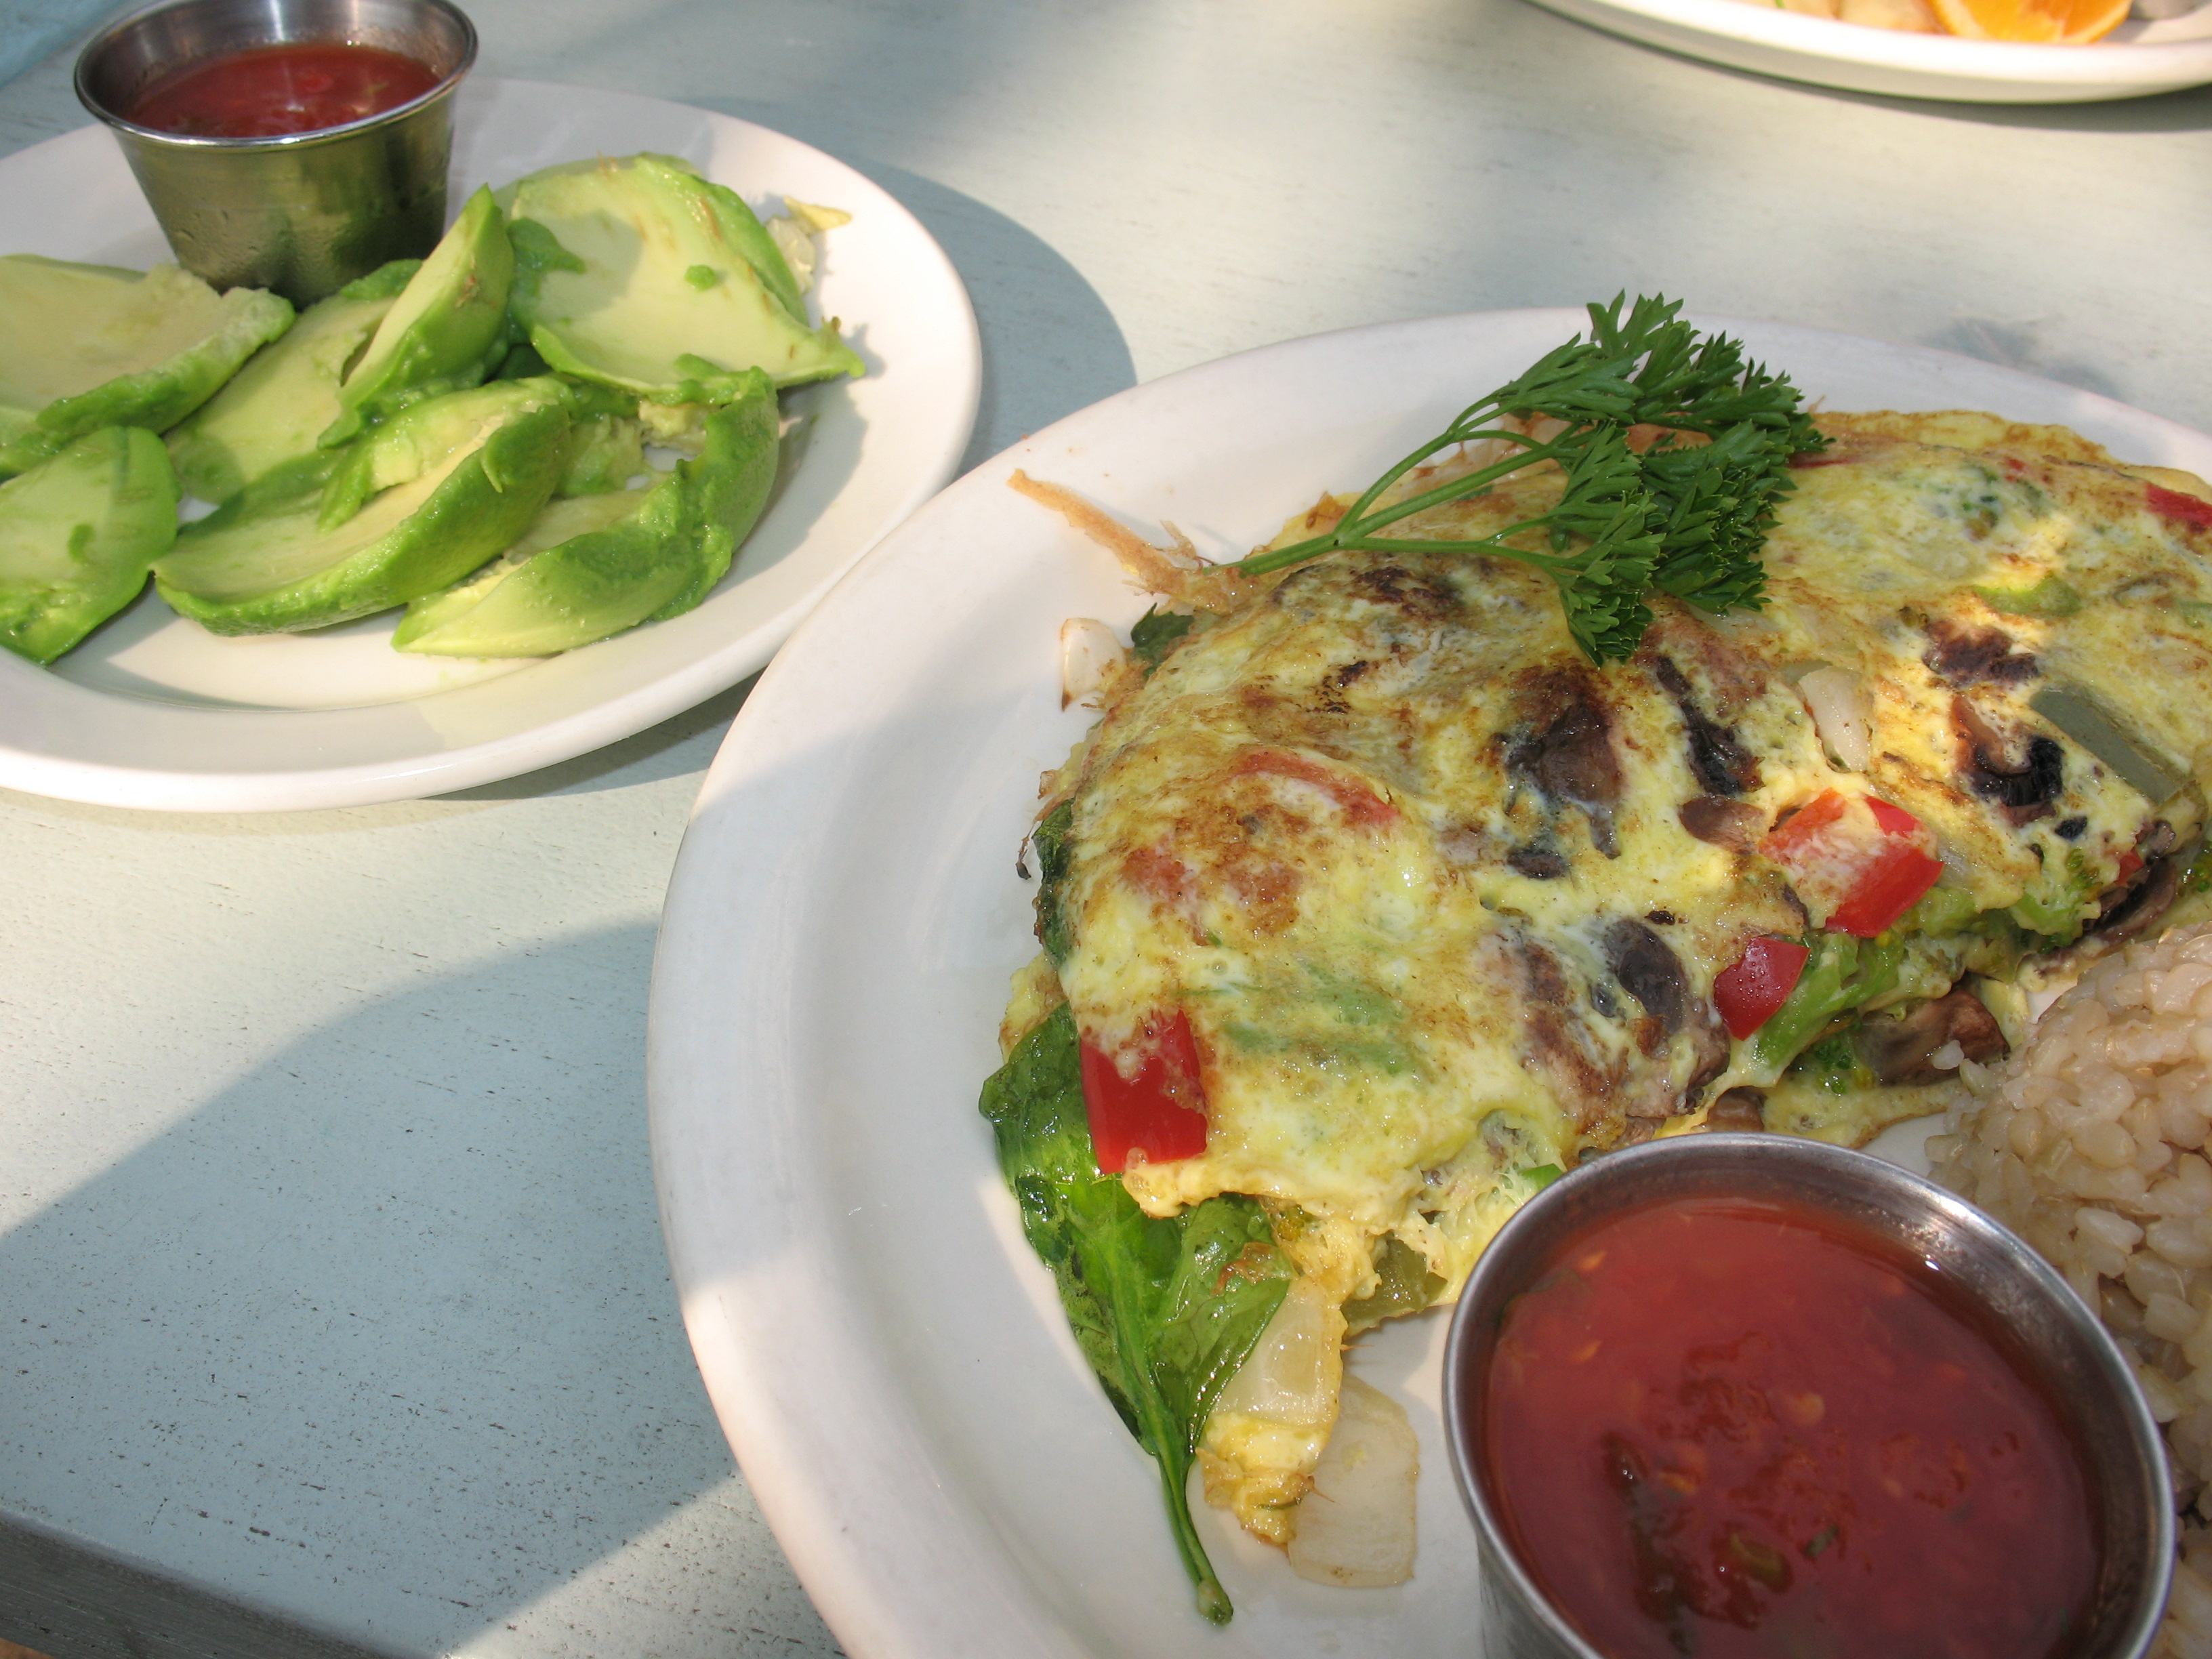 Veggie omelet sans cheese with brown rice, salsa, and avocado on the side.